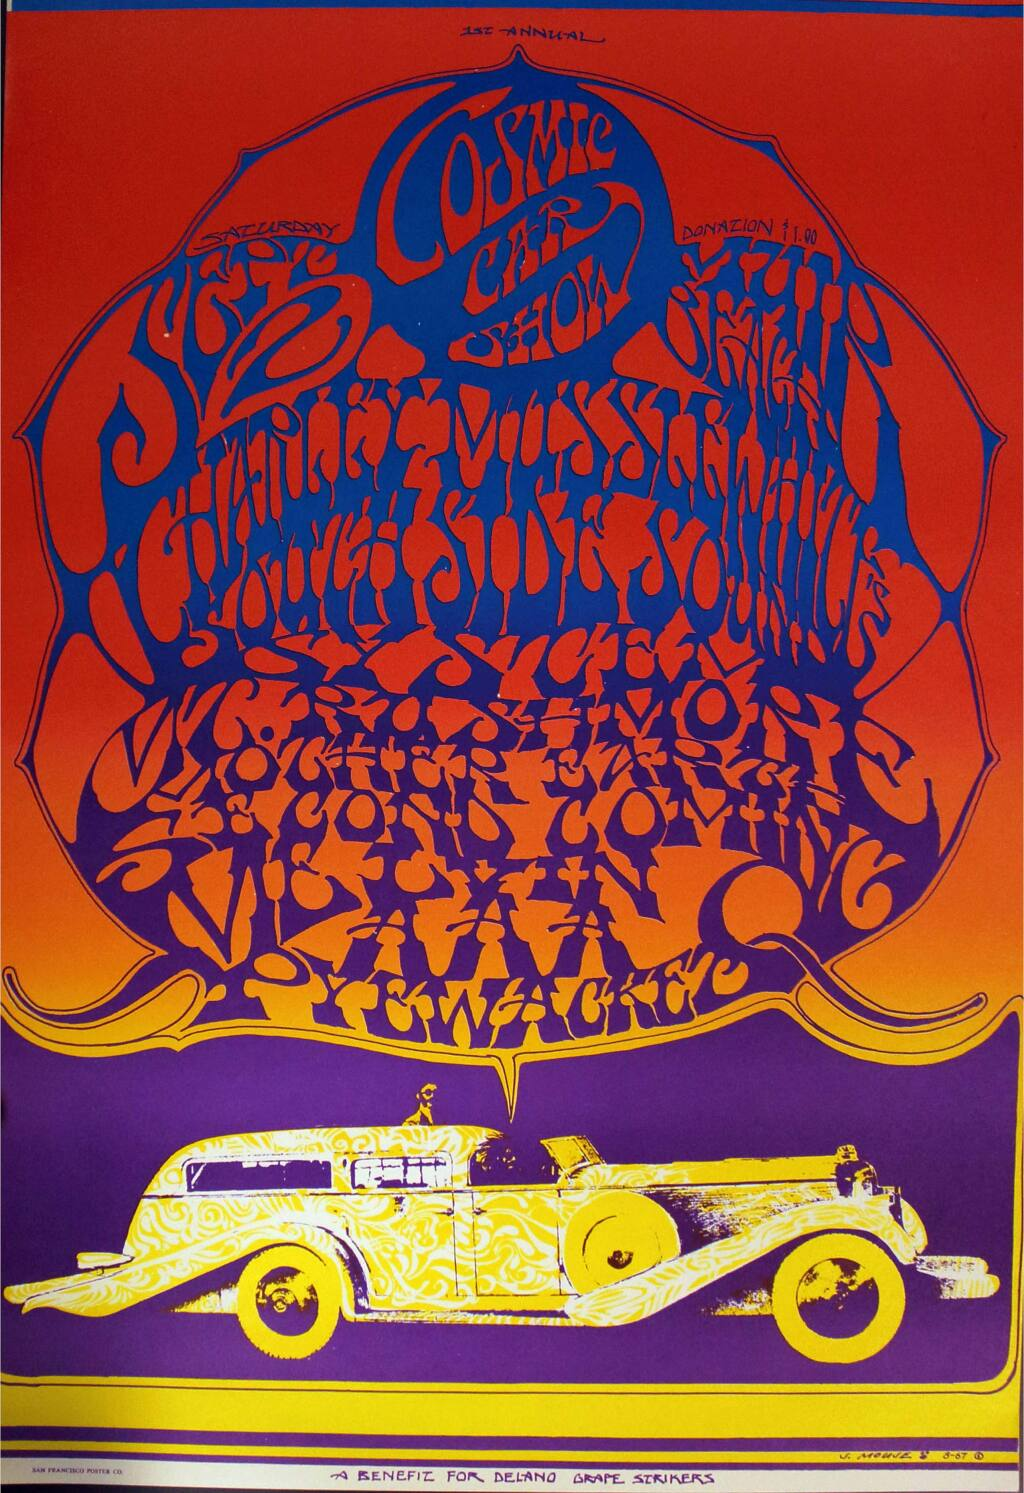 One of the classic psychedelic 1960s posters by longtime Sonoma County resident Stanley Mouse at the Museums of Sonoma County exhibit 'And the Beat Goes On.' (MUSEUMS OF SONOMA COUNTY)